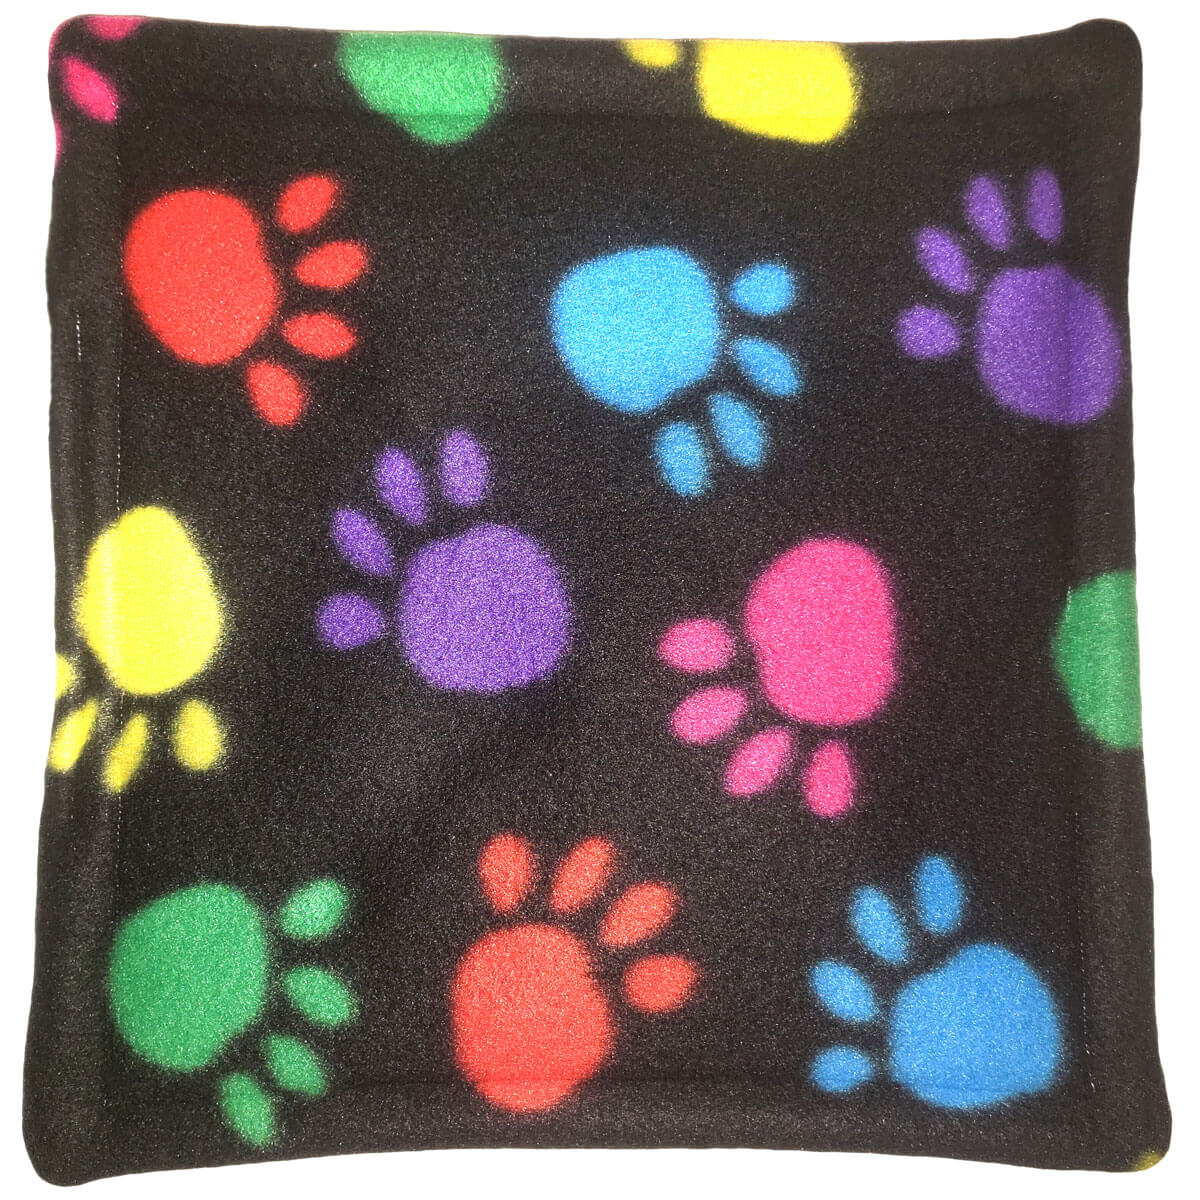 Potty Pad in Rainbow Paws